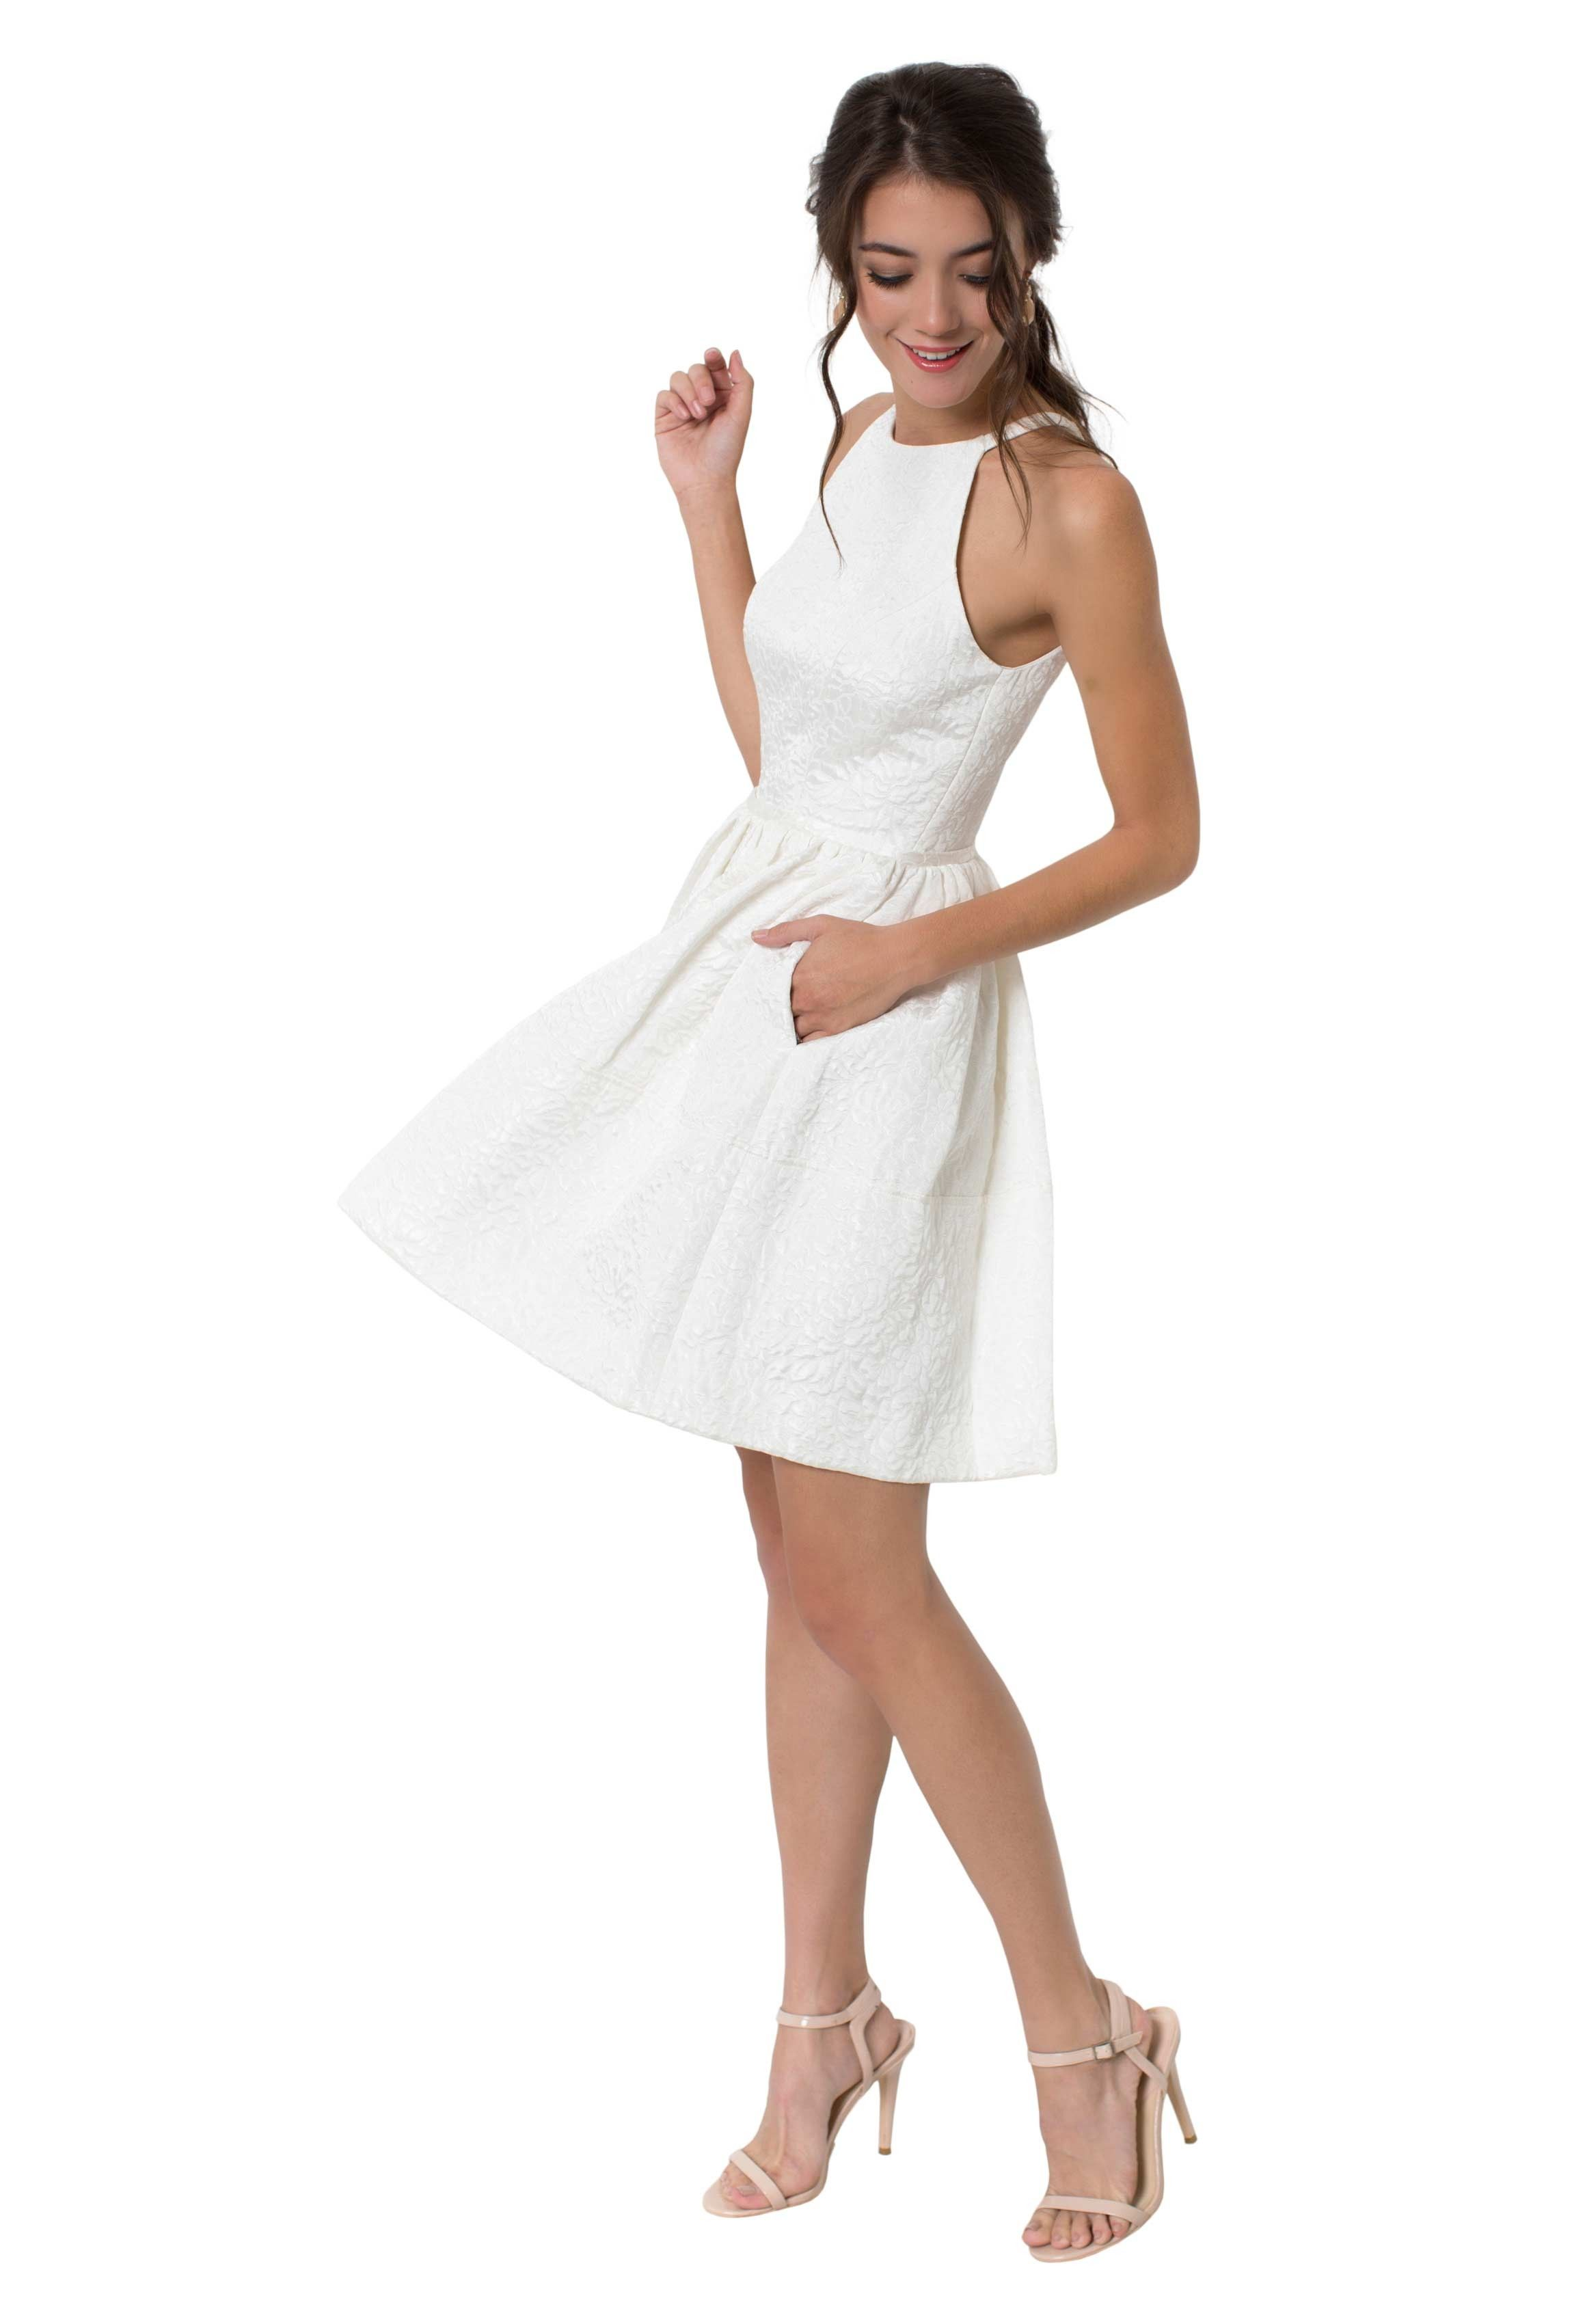 A short white halter top dress with full skirt and pockets